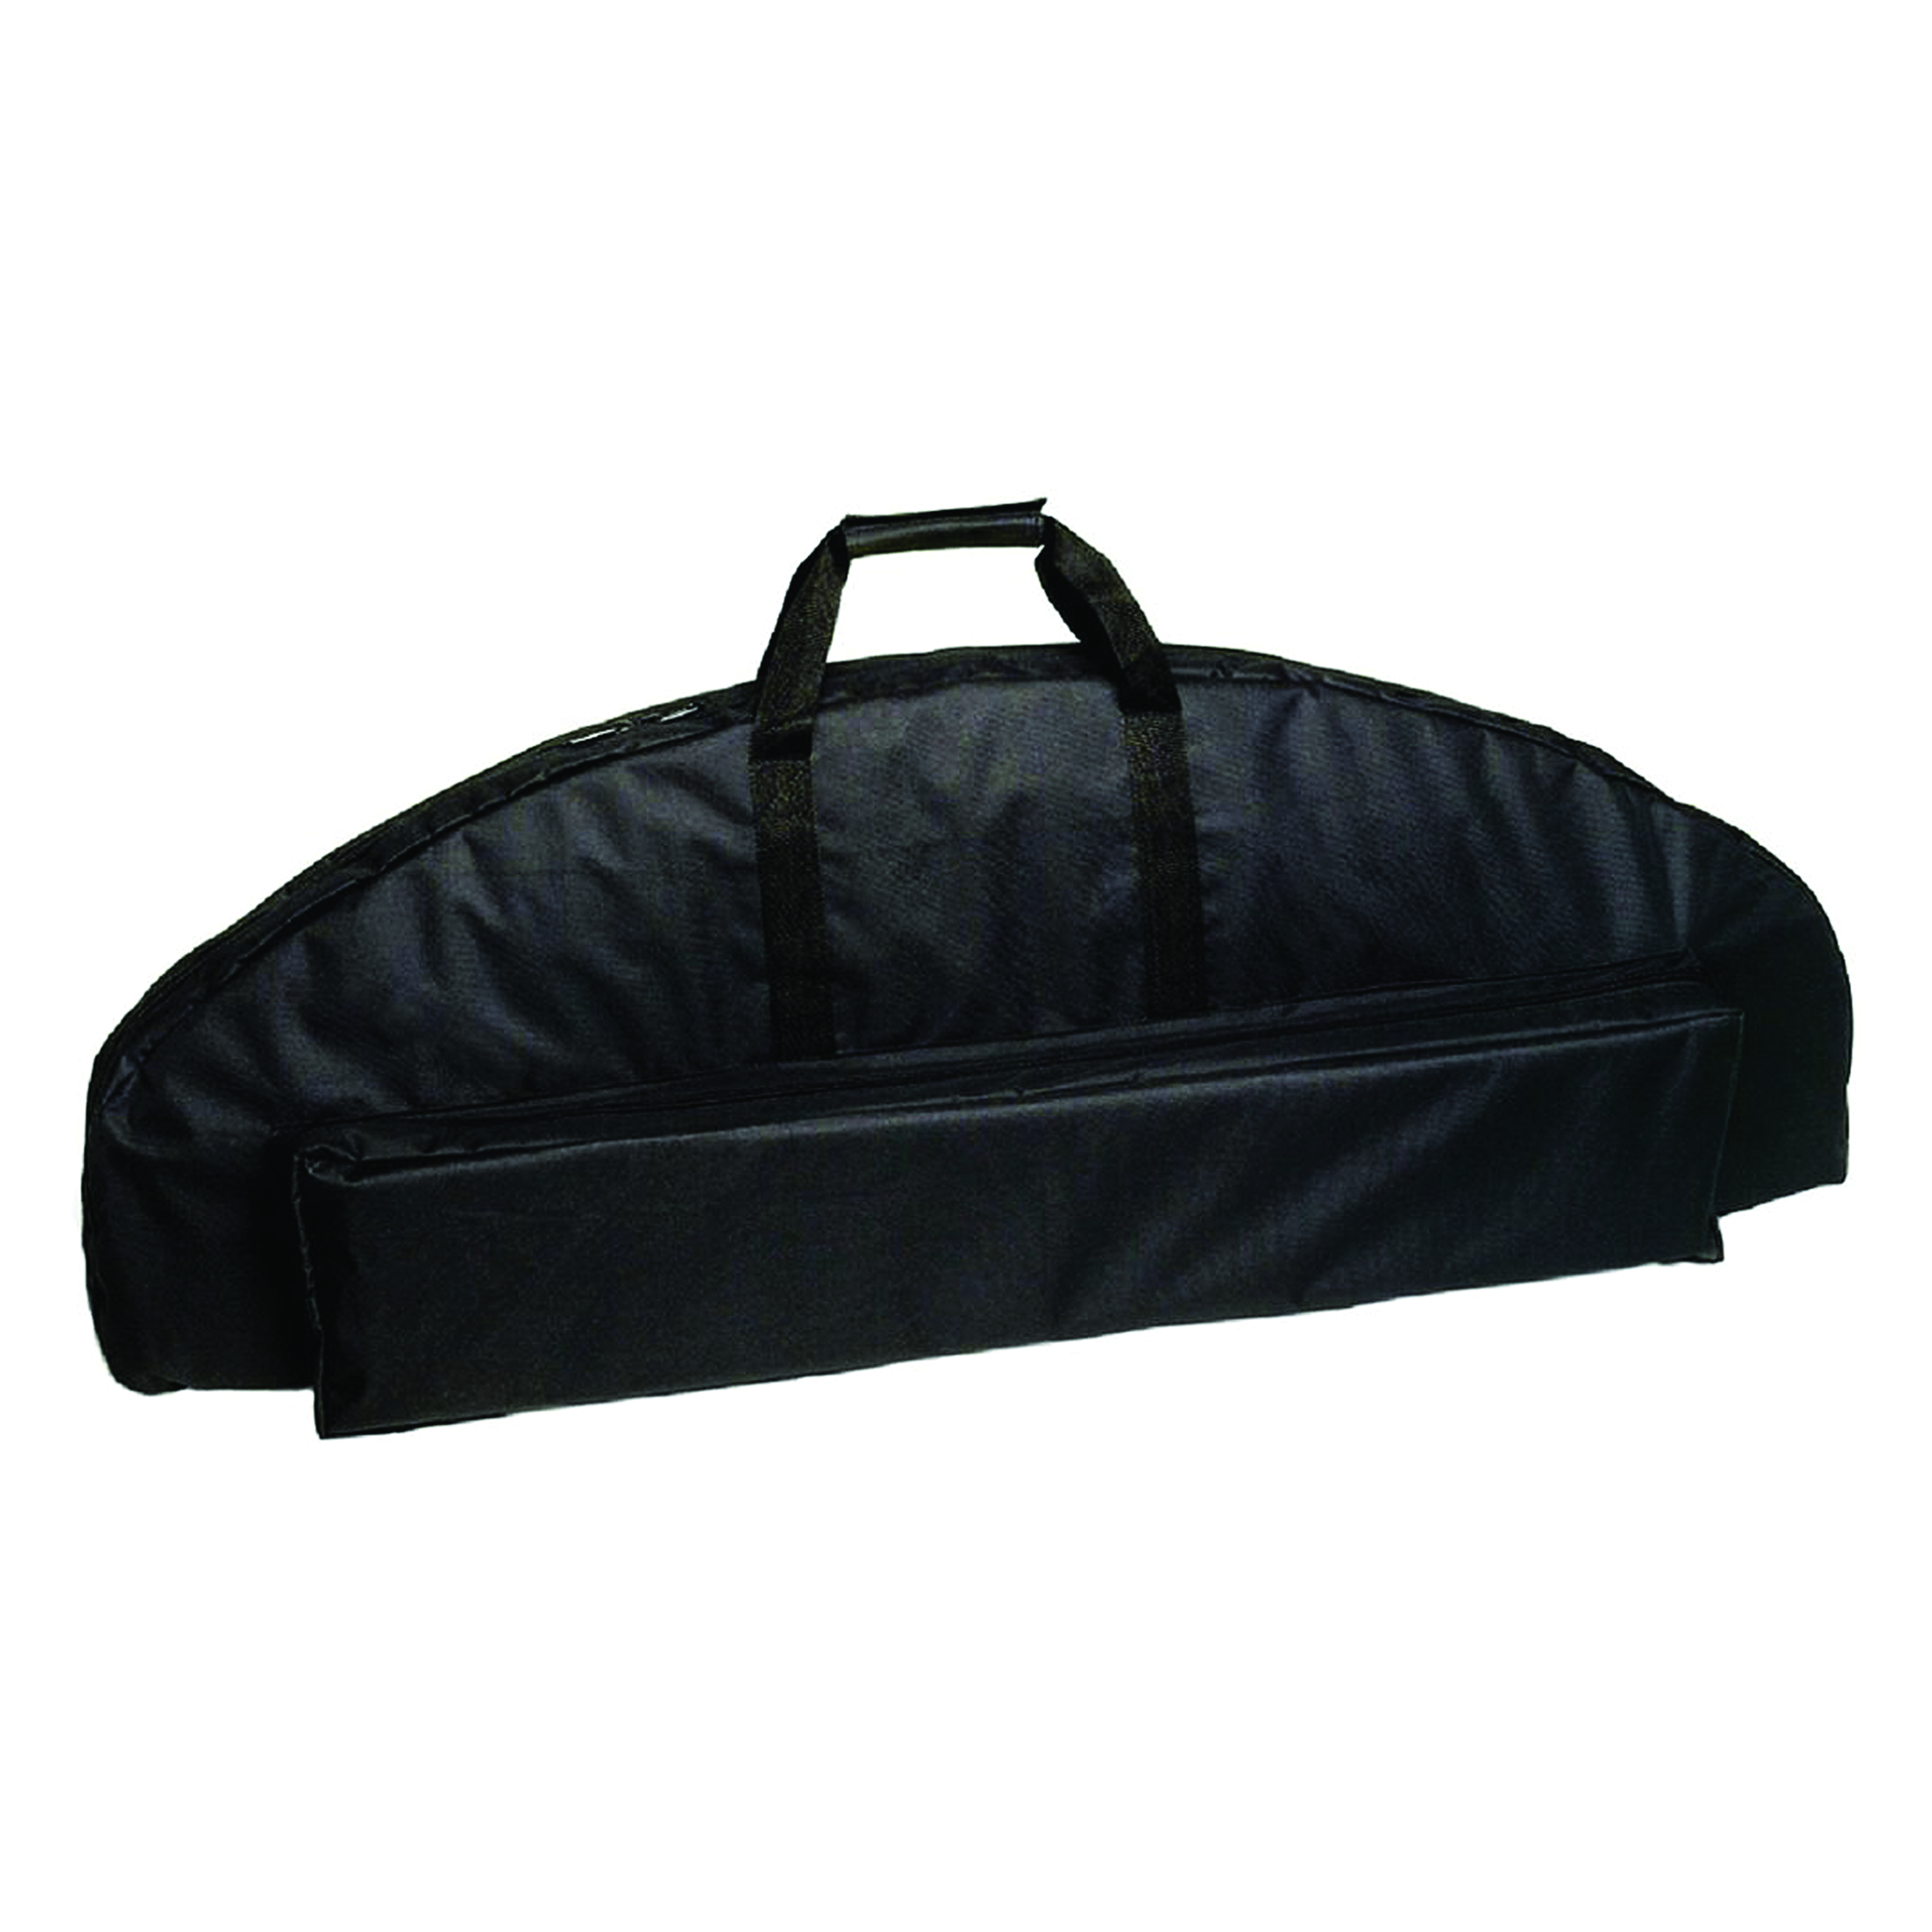 30 06 outdoors promo compound bow case